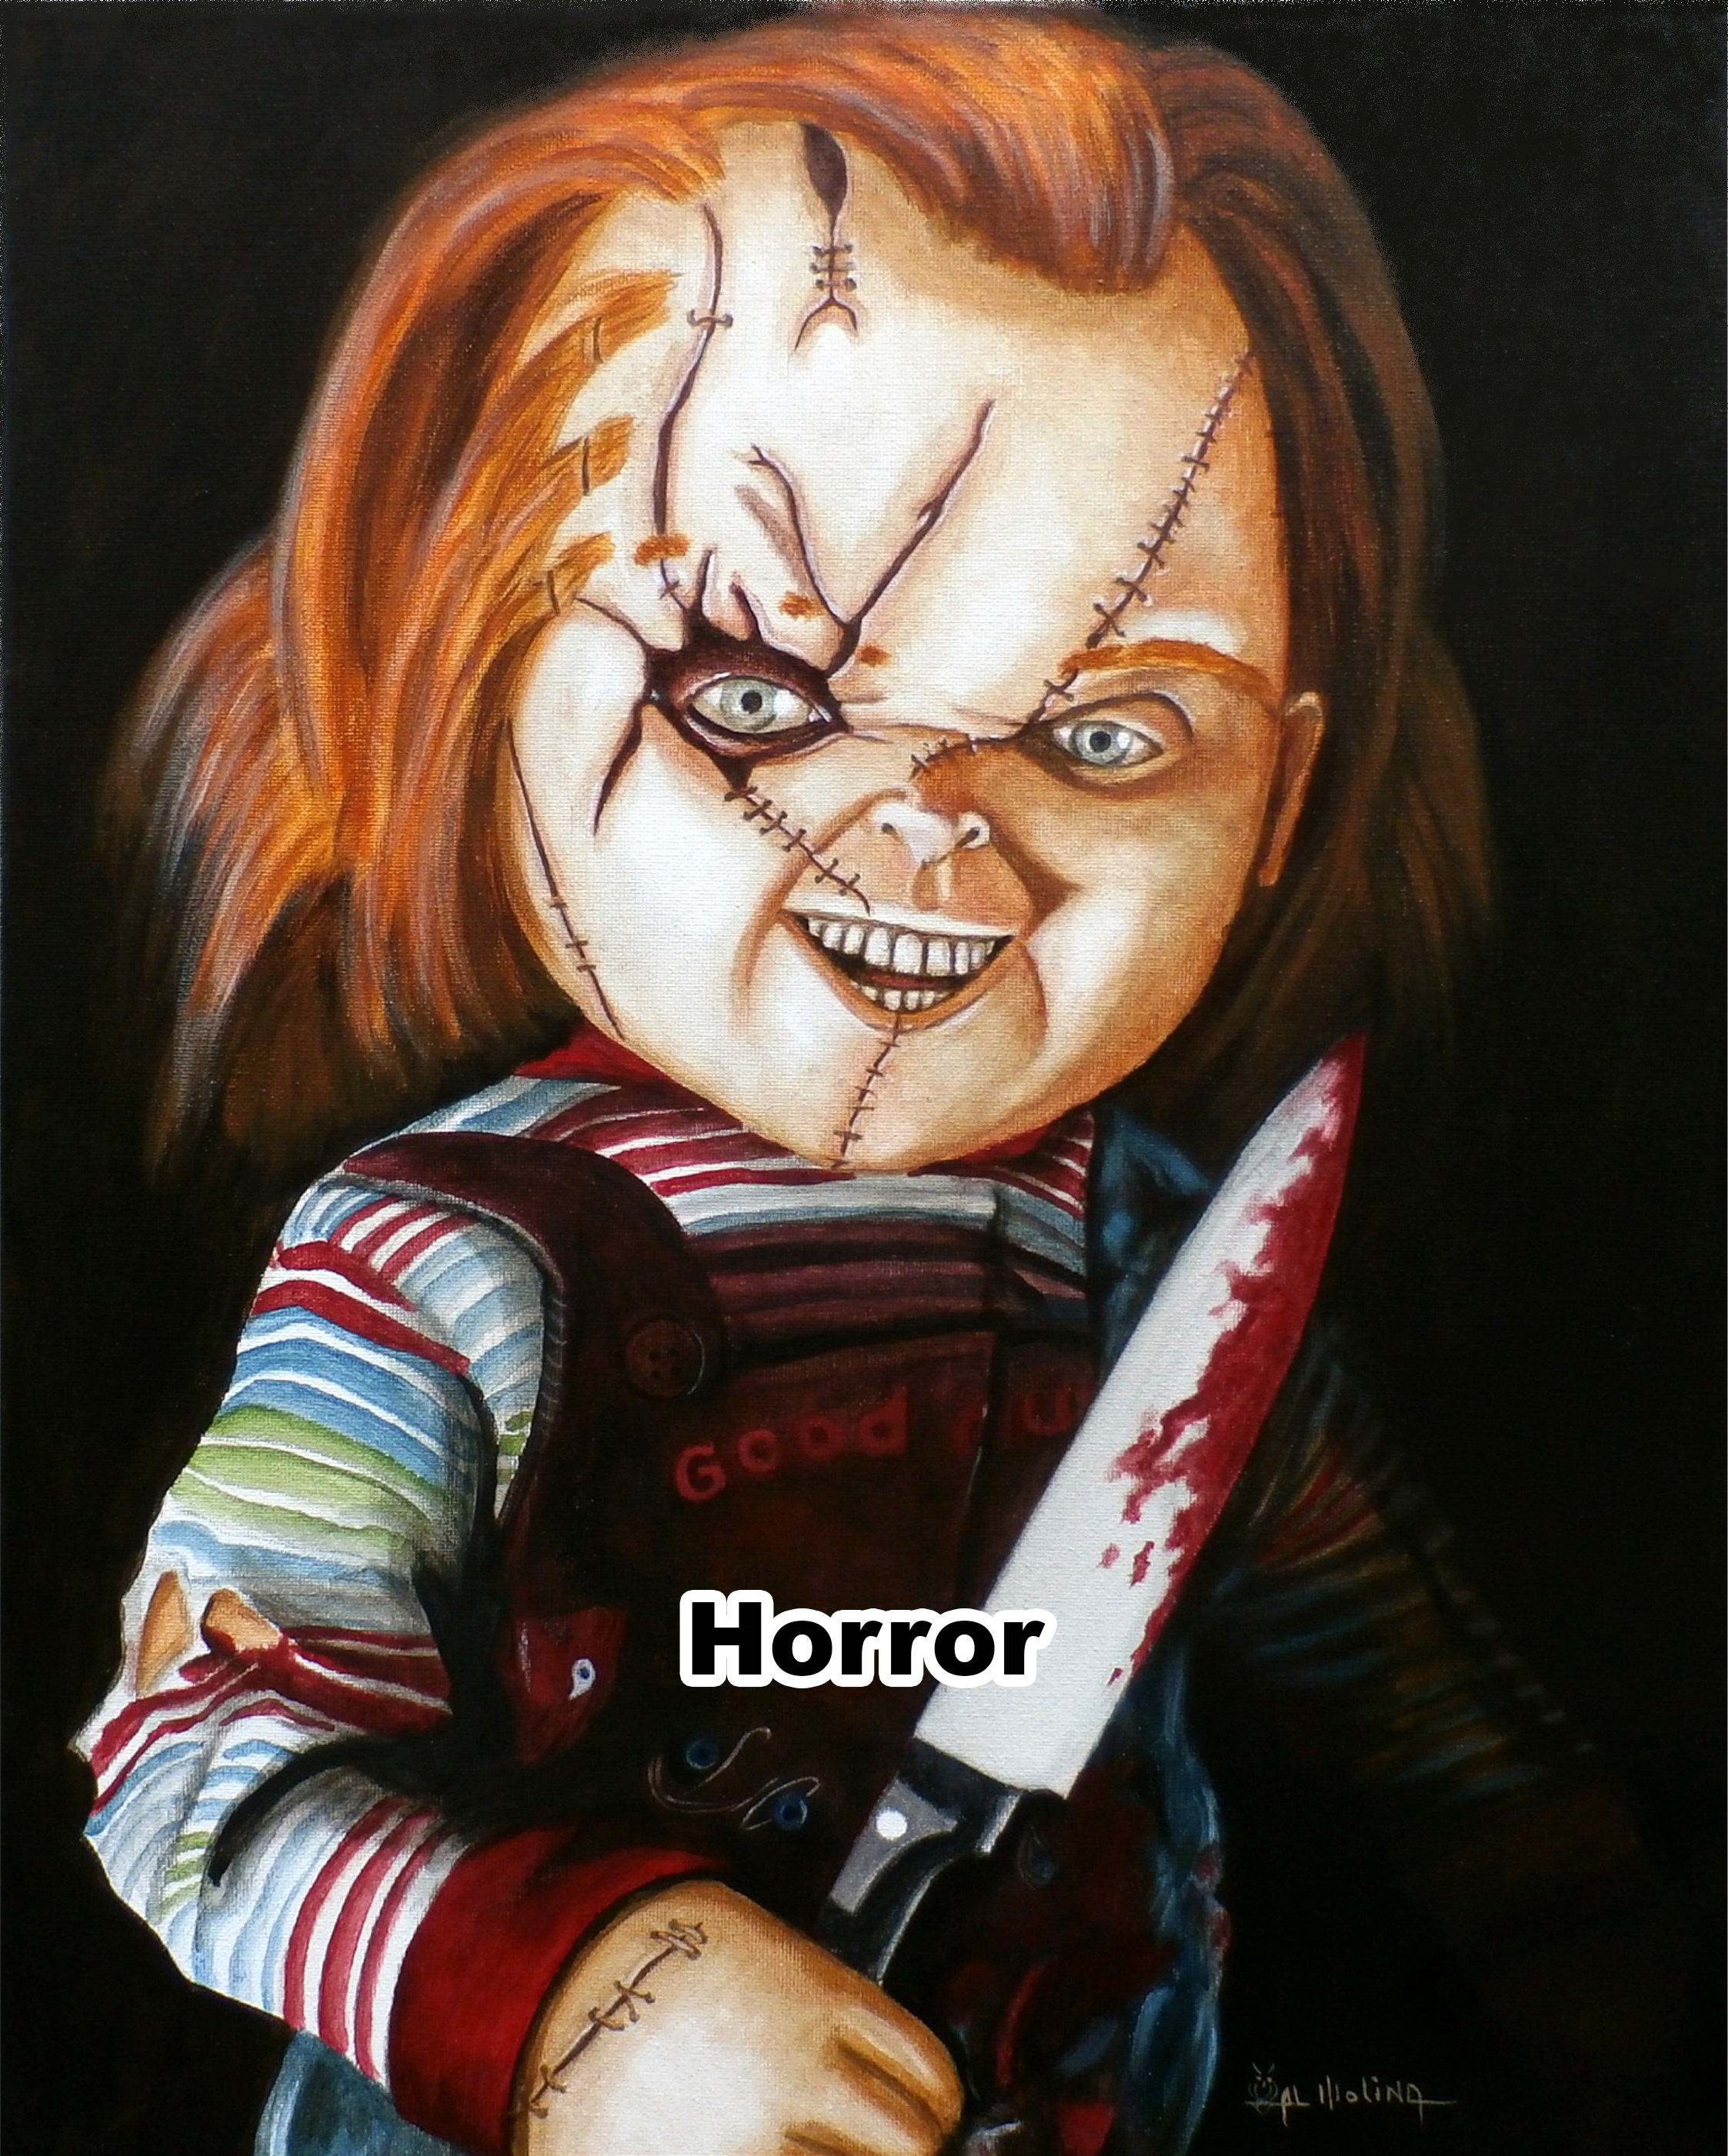 Hi I'm Chucky, Wanna Play_CollectionName